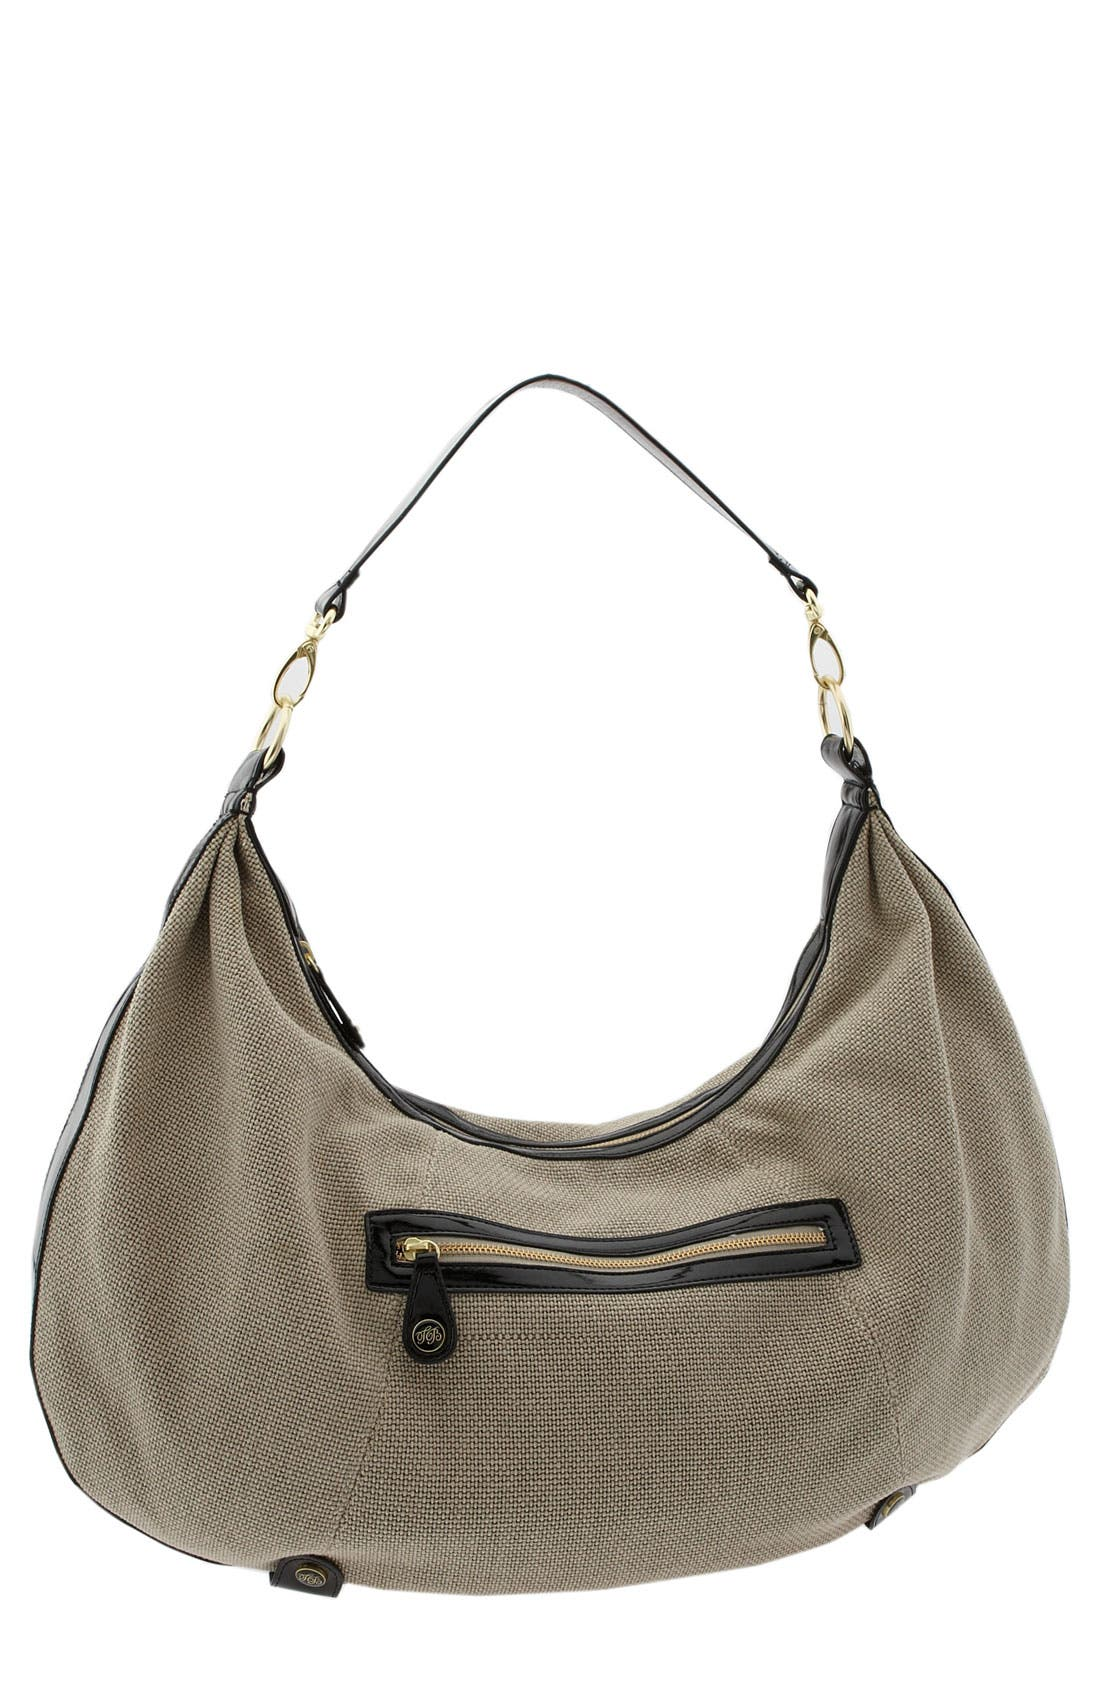 Main Image - Ted Baker London 'Oversized' Convertible Canvas Hobo